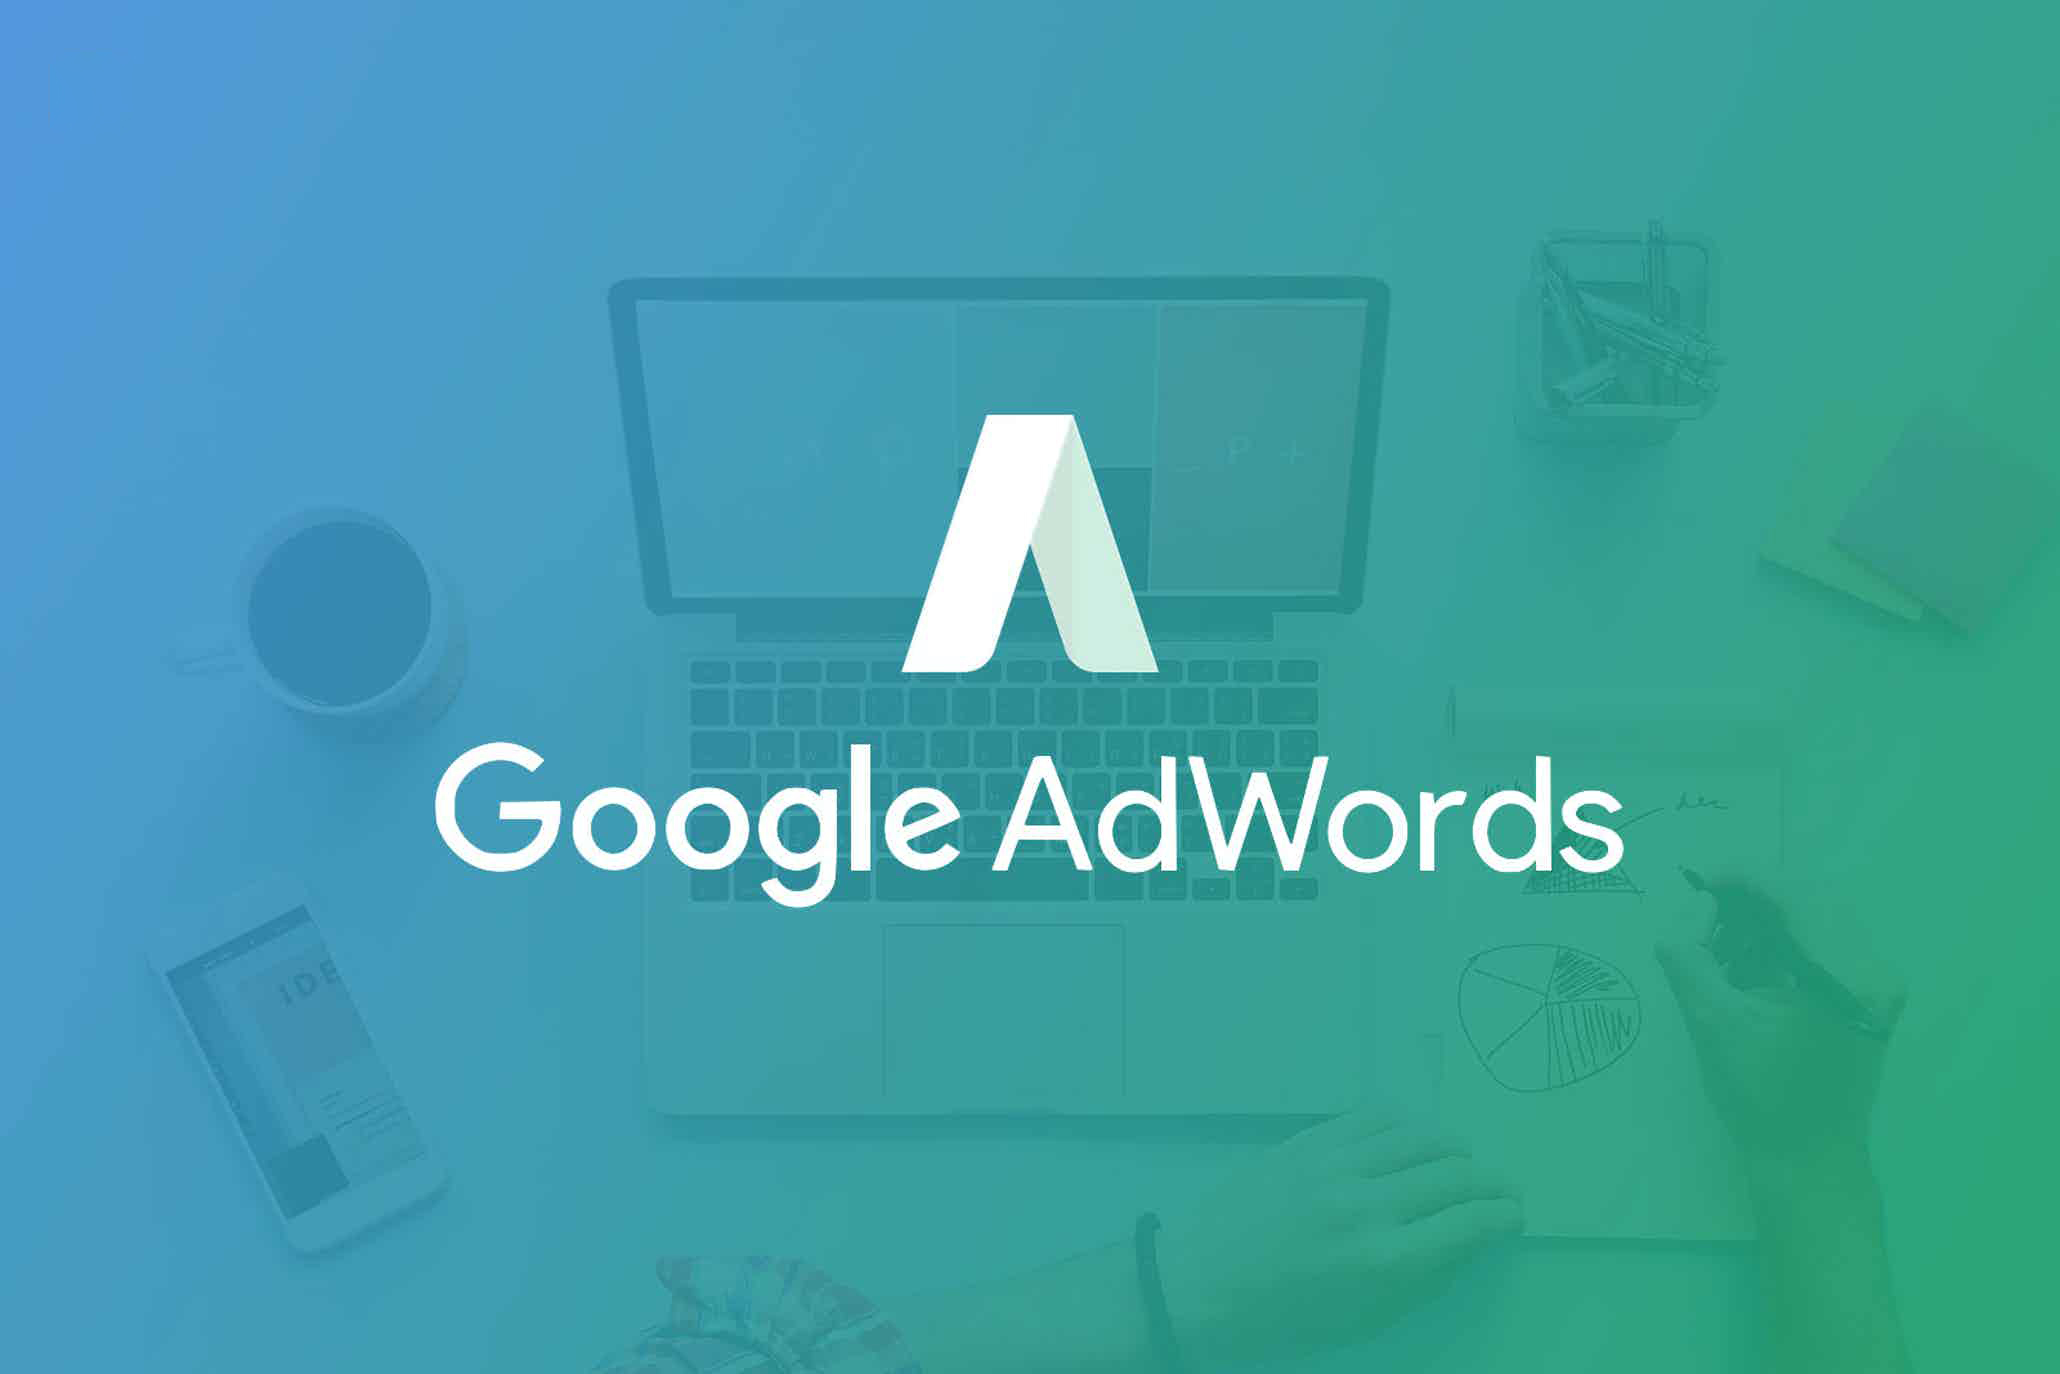 What is Google Adwords Management?